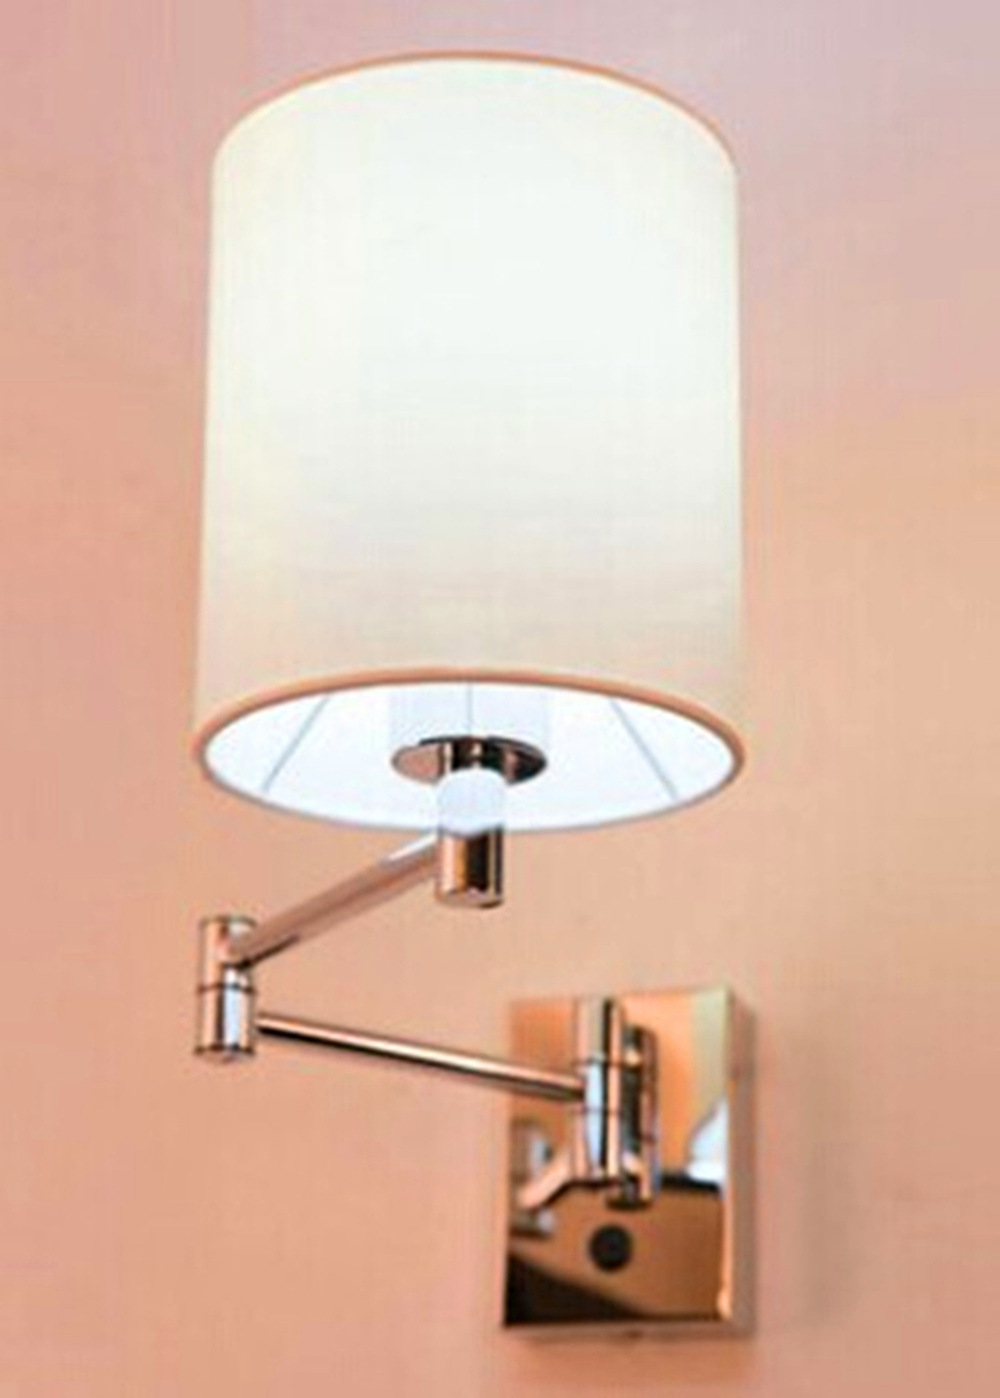 Simple single shake lamp, suitable for hotels, bar, home bedrooms, living room and other places aisle